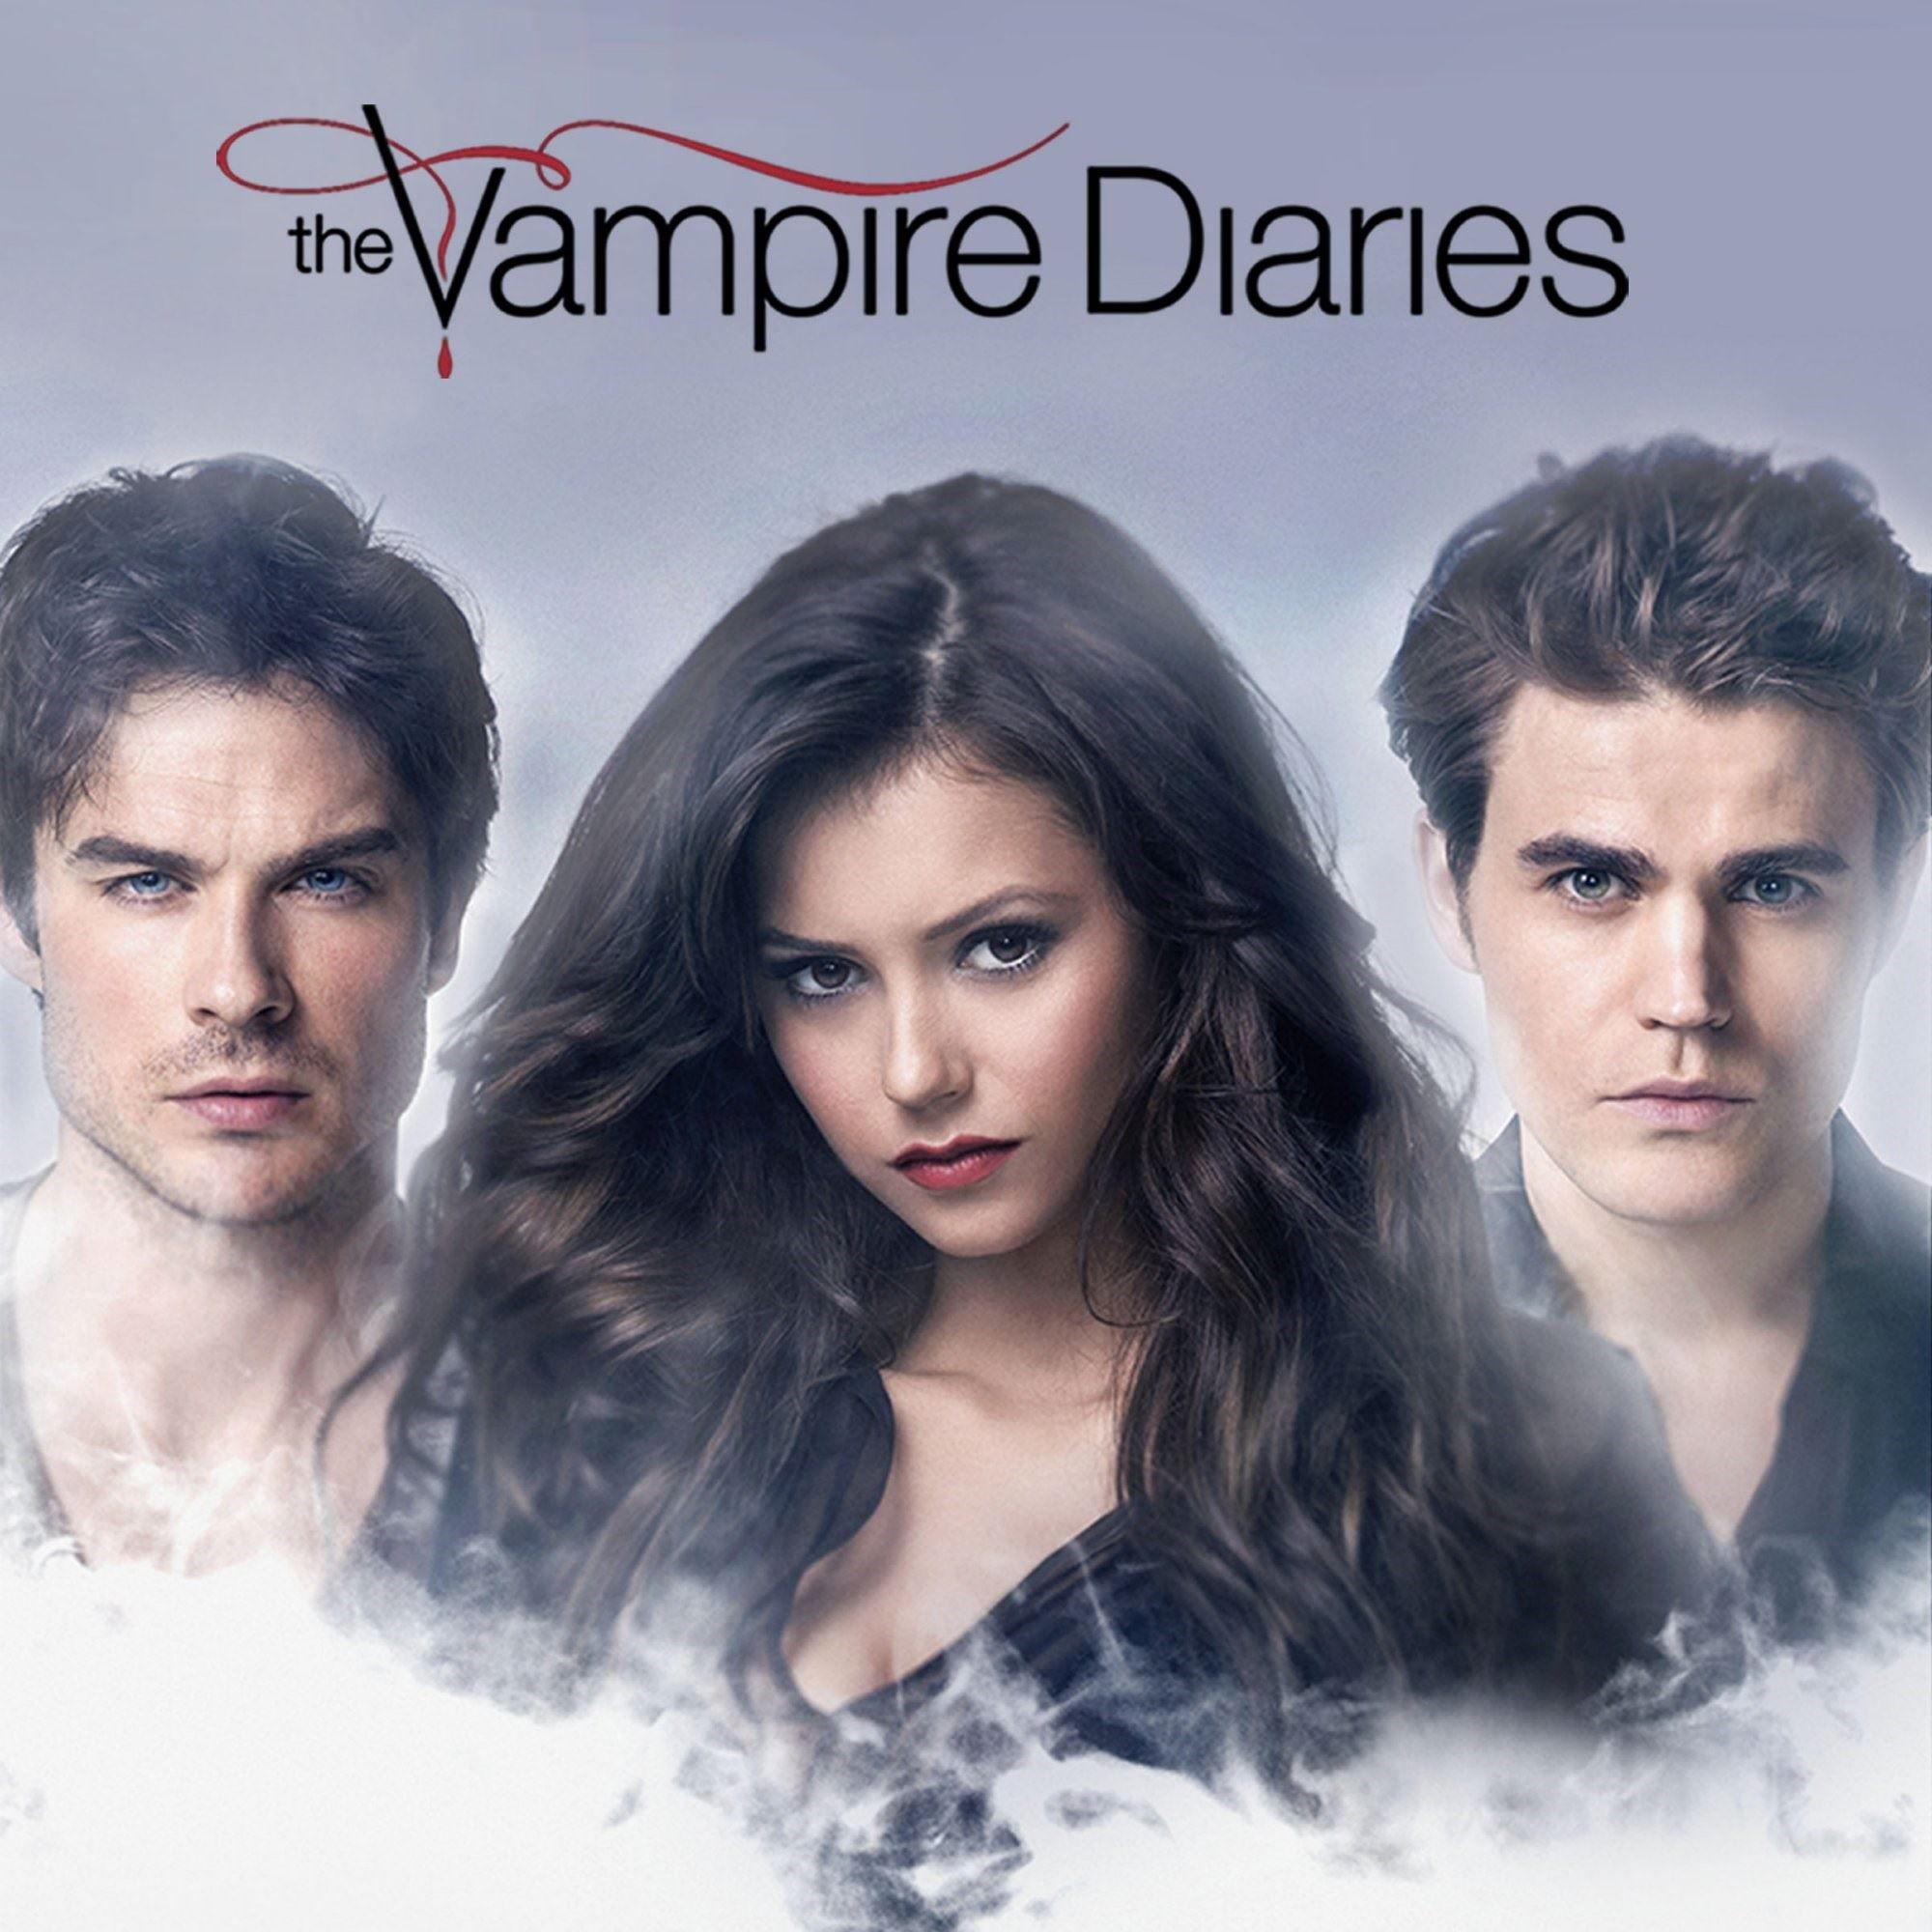 The Vampire Diaries' Paul Wesley: Season 7 Might Not Include the Same Cast Members - http://theoriginalscw.tv/the-vampire-diaries-paul-wesley-season-7-might-not-include-the-same-cast-members/